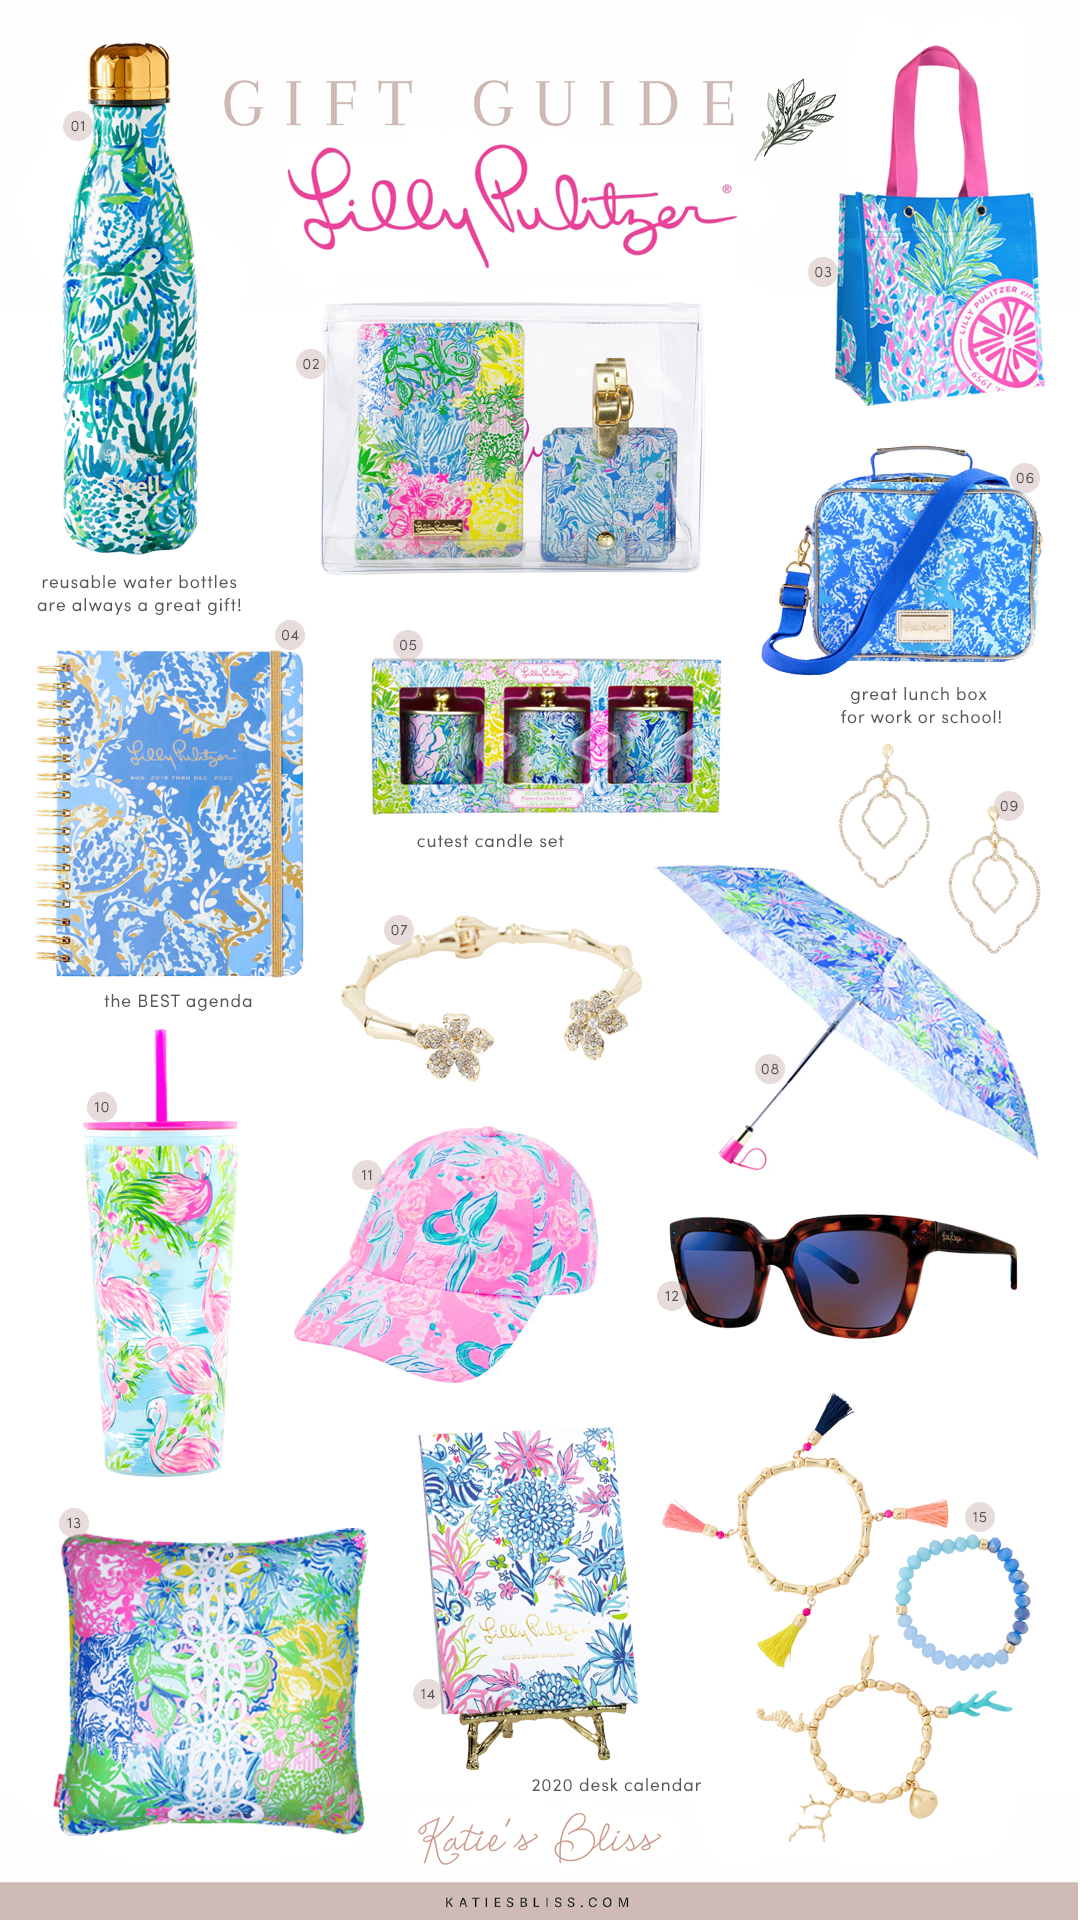 Lilly Pulitzer Holiday Gift Guide Under $50 | Katie's Bliss